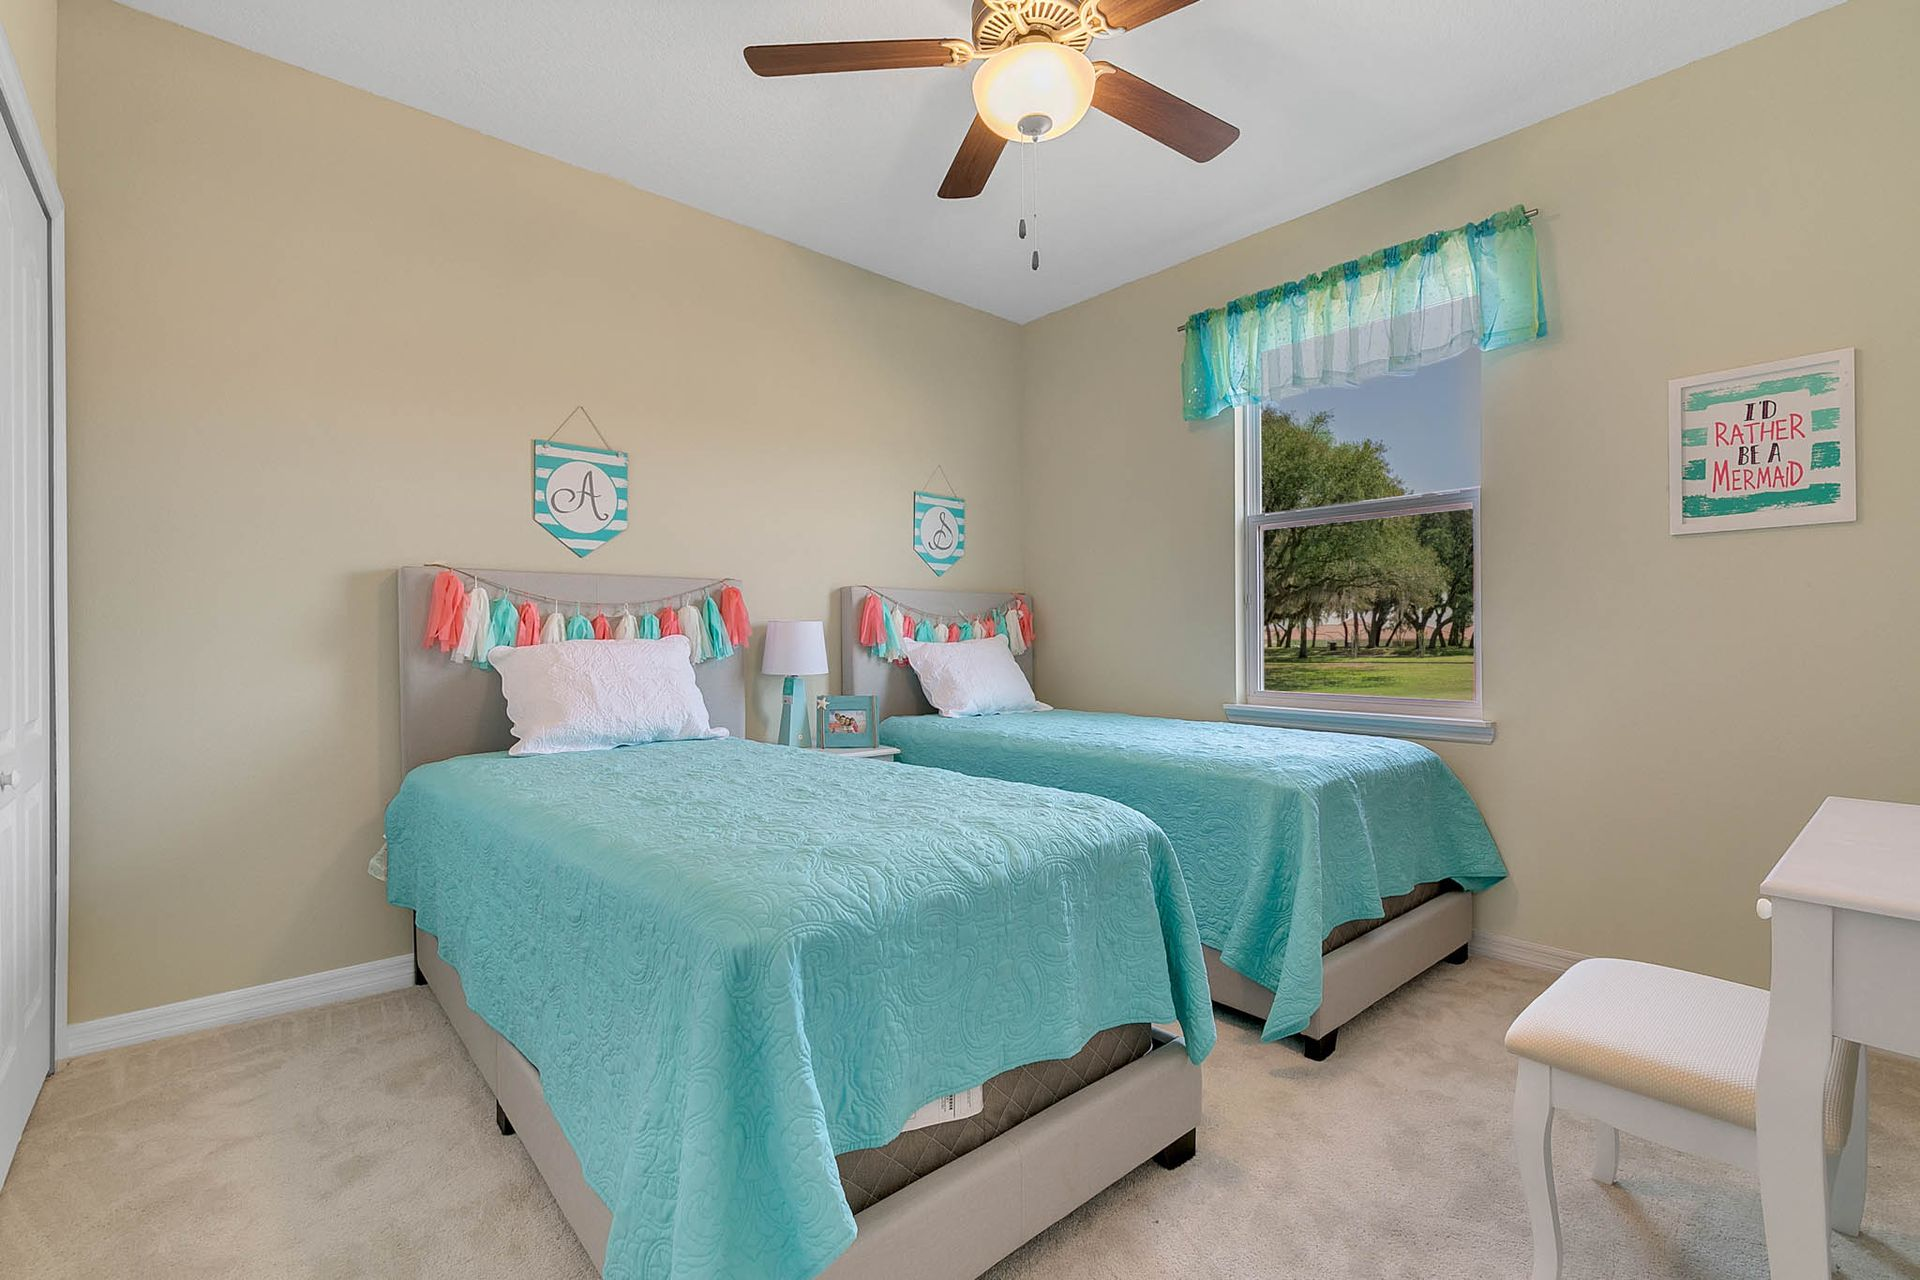 Granada Plan, Kissimmee, Florida 34744 - Granada Plan at VillaSol by ...